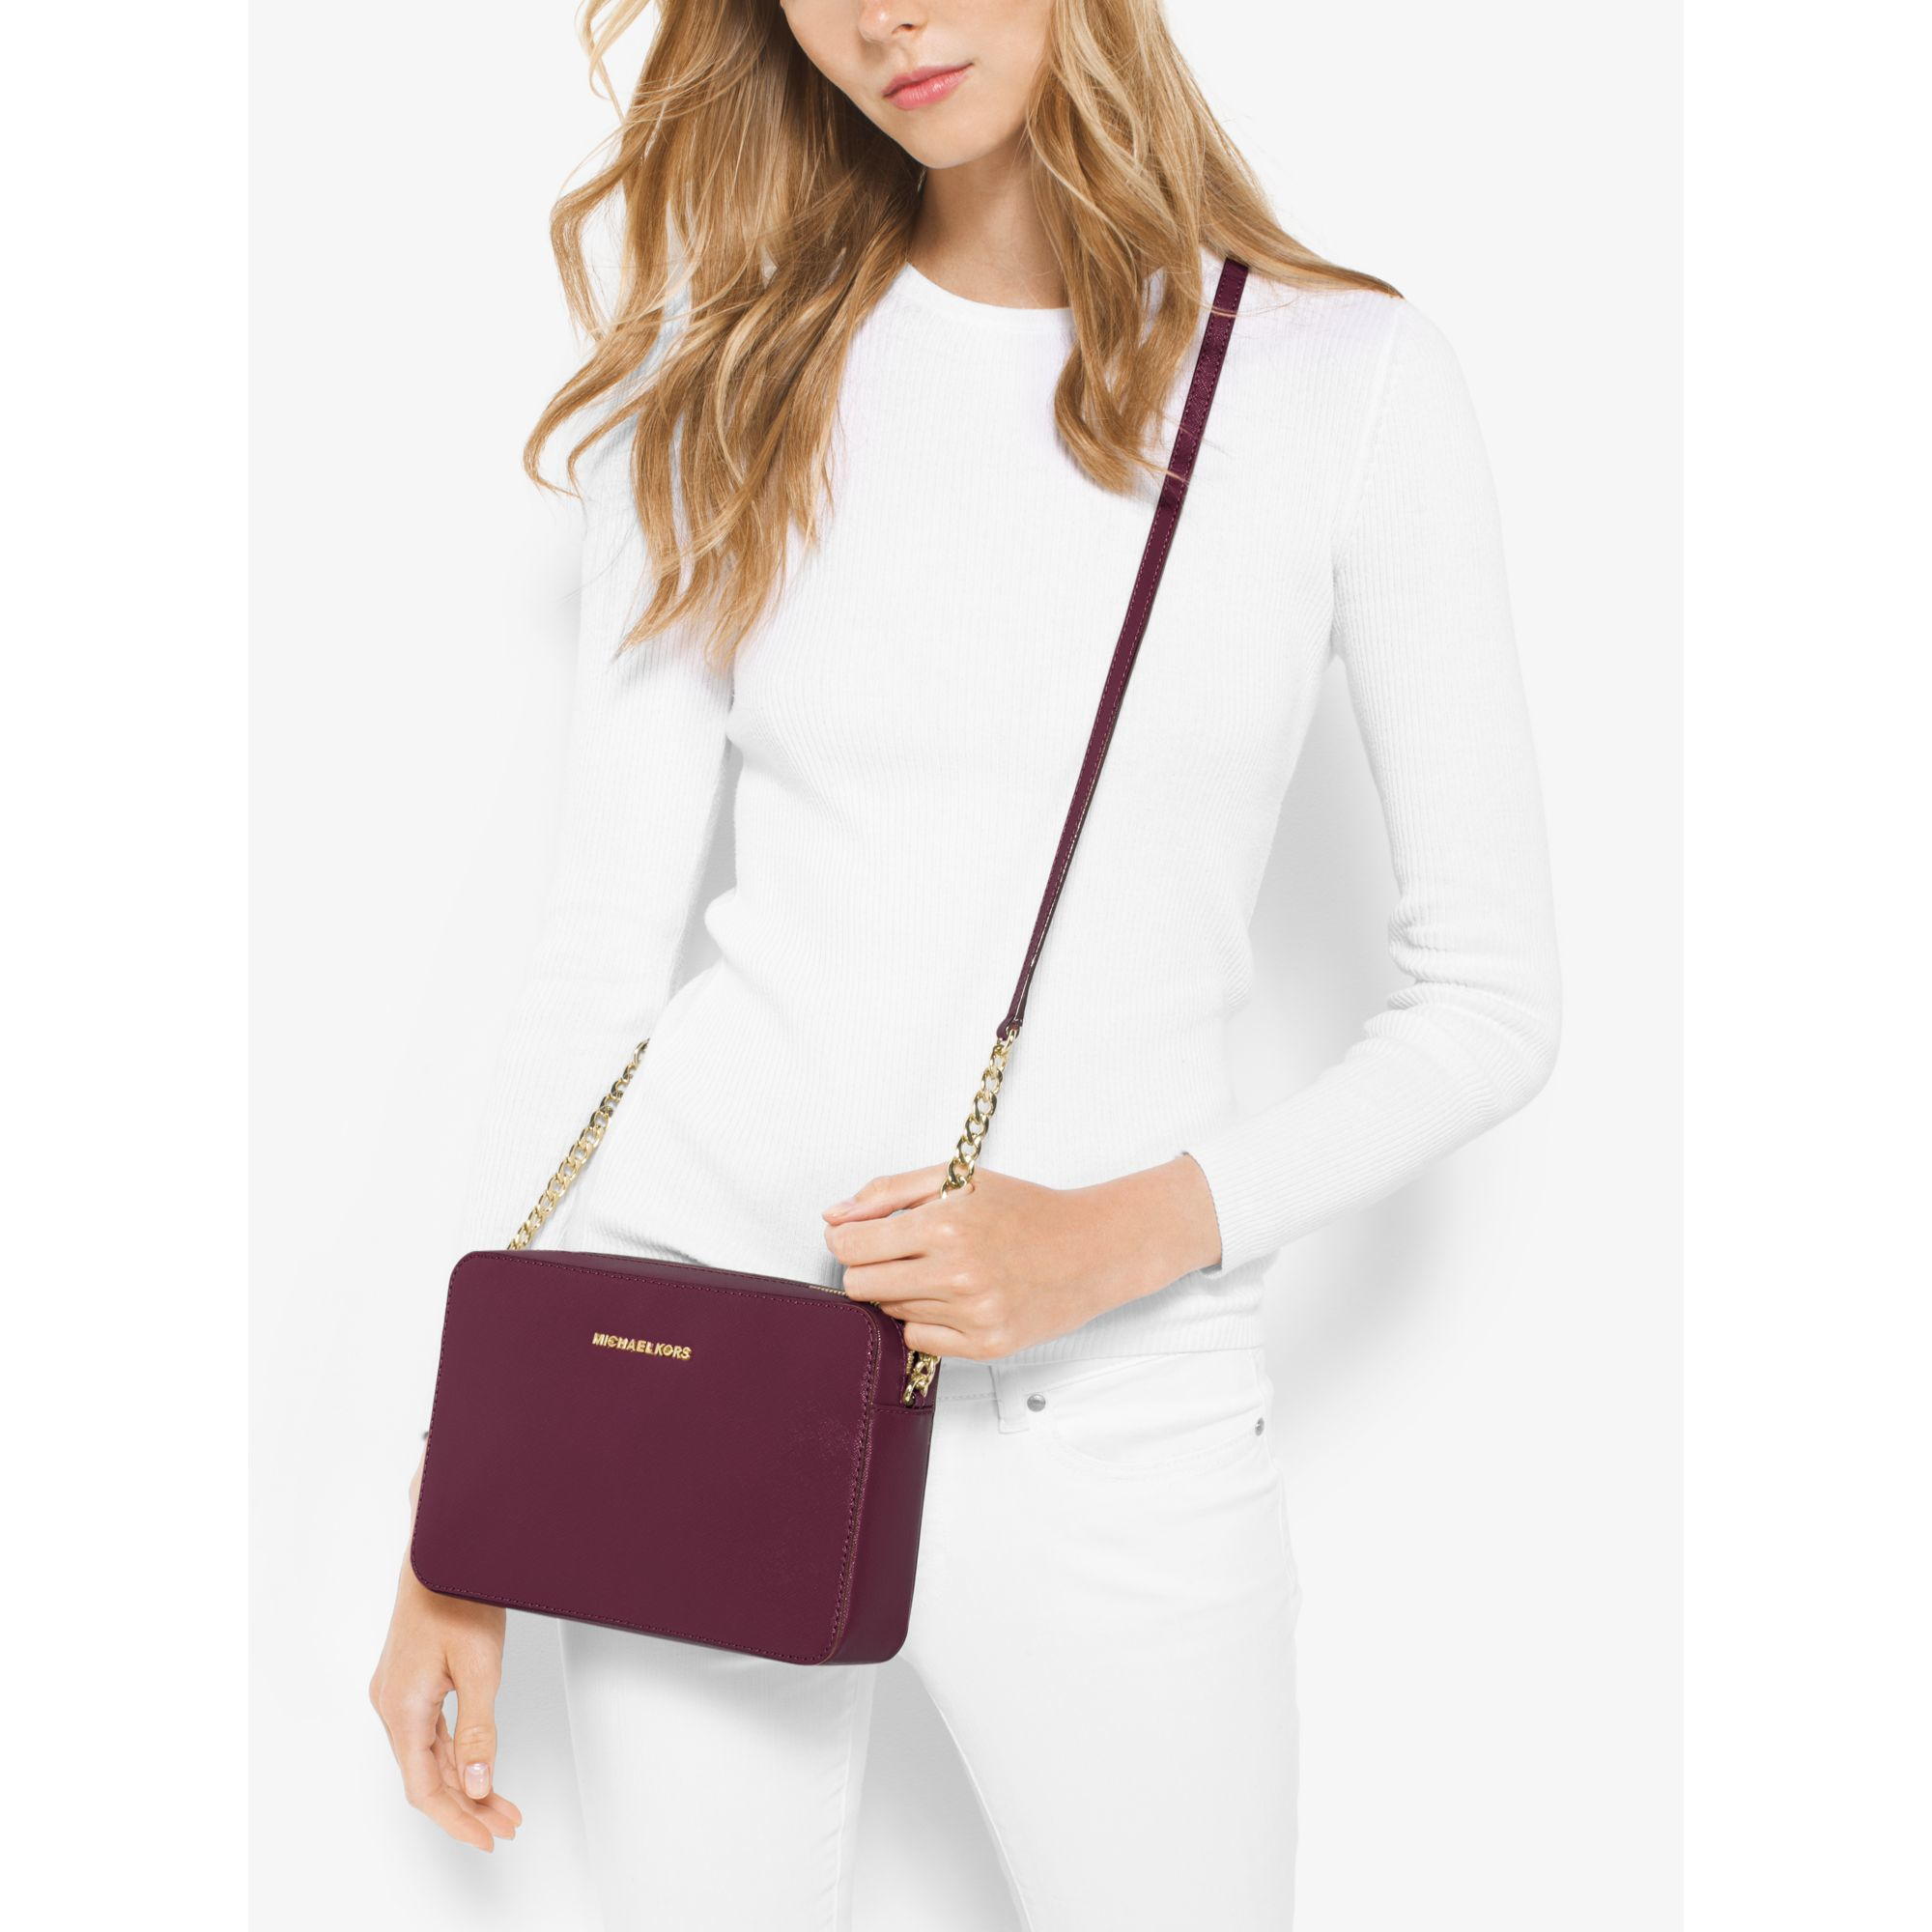 b5a65866f5986b Michael Kors Jet Set Large Patent Leather Crossbody Bag in Purple - Lyst